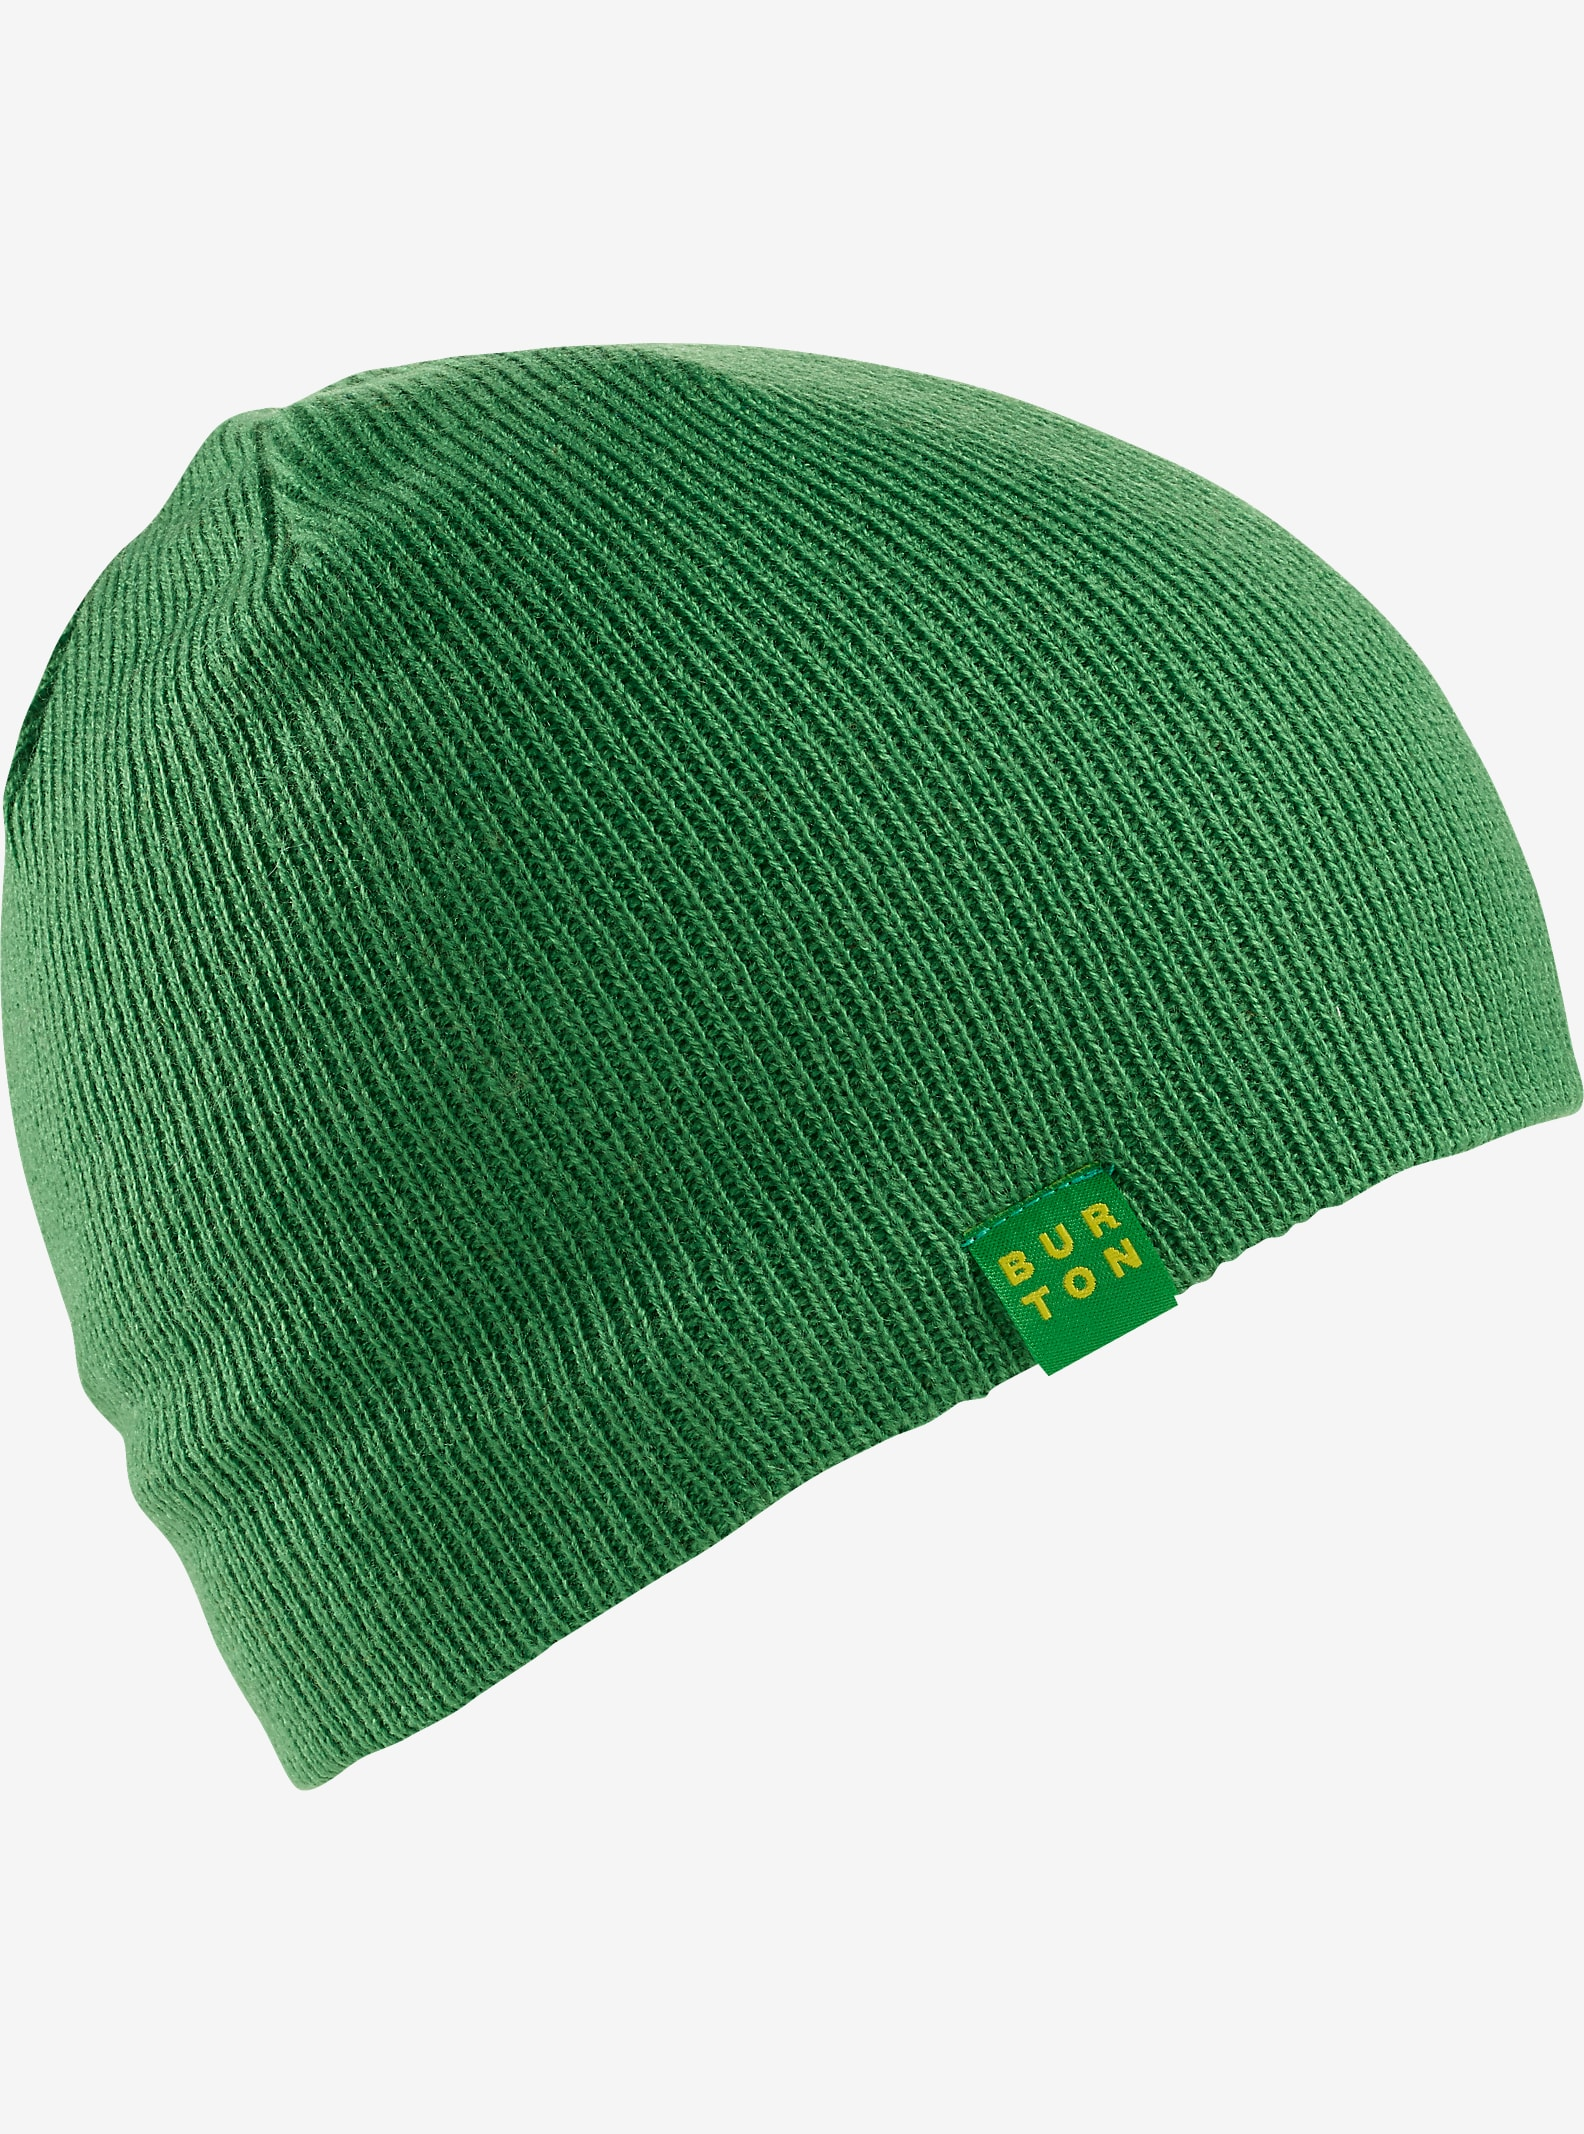 Burton Boys' All Day Long Beanie shown in Slime